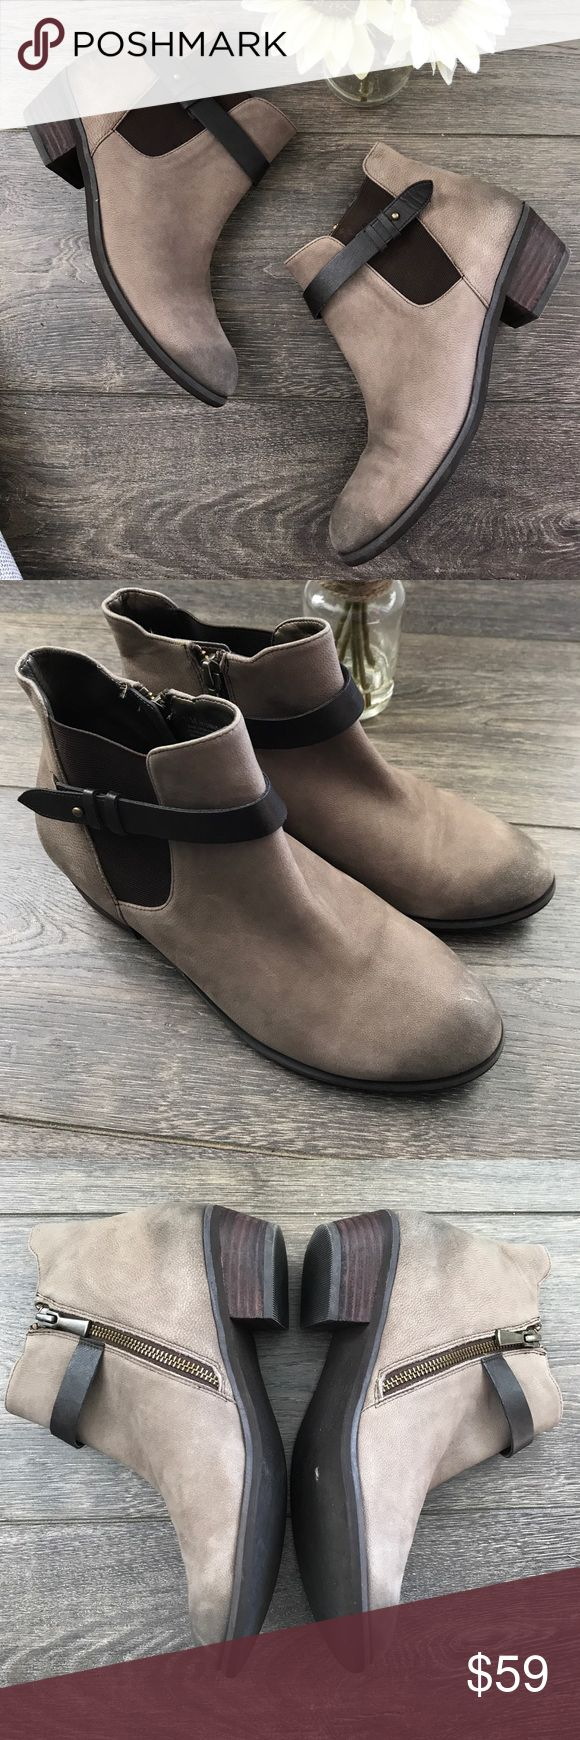 """BP Nordstrom taupe ankle boots booties EUC, couple light scratches on toes but no major flaws, light neutral taupe/grey color, 1.5"""" heel, round toe, side zip, leather upper bp Shoes Ankle Boots & Booties"""